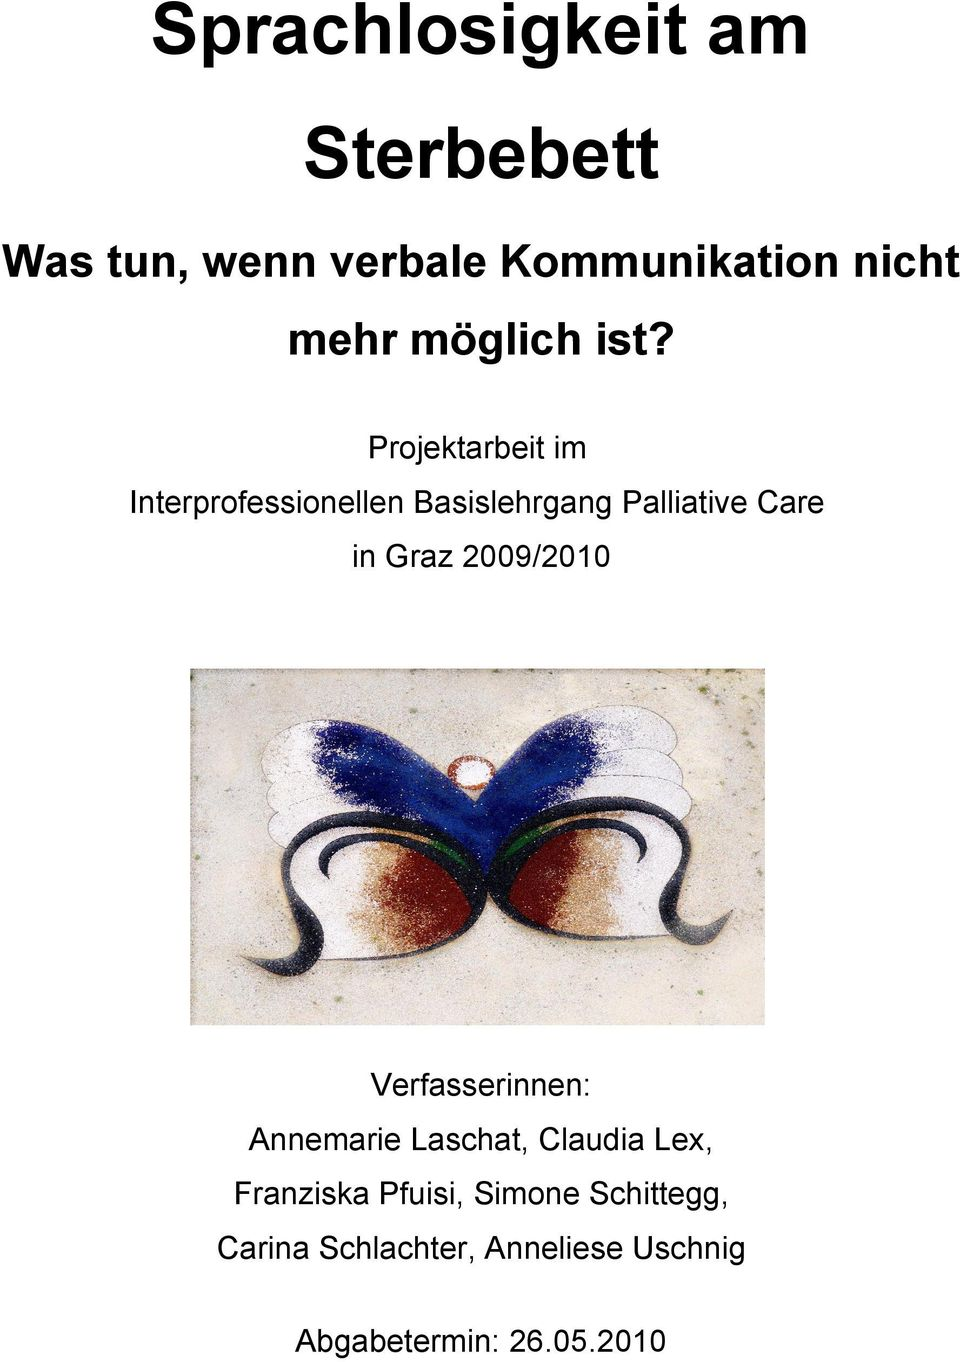 Projektarbeit im Interprofessionellen Basislehrgang Palliative Care in Graz